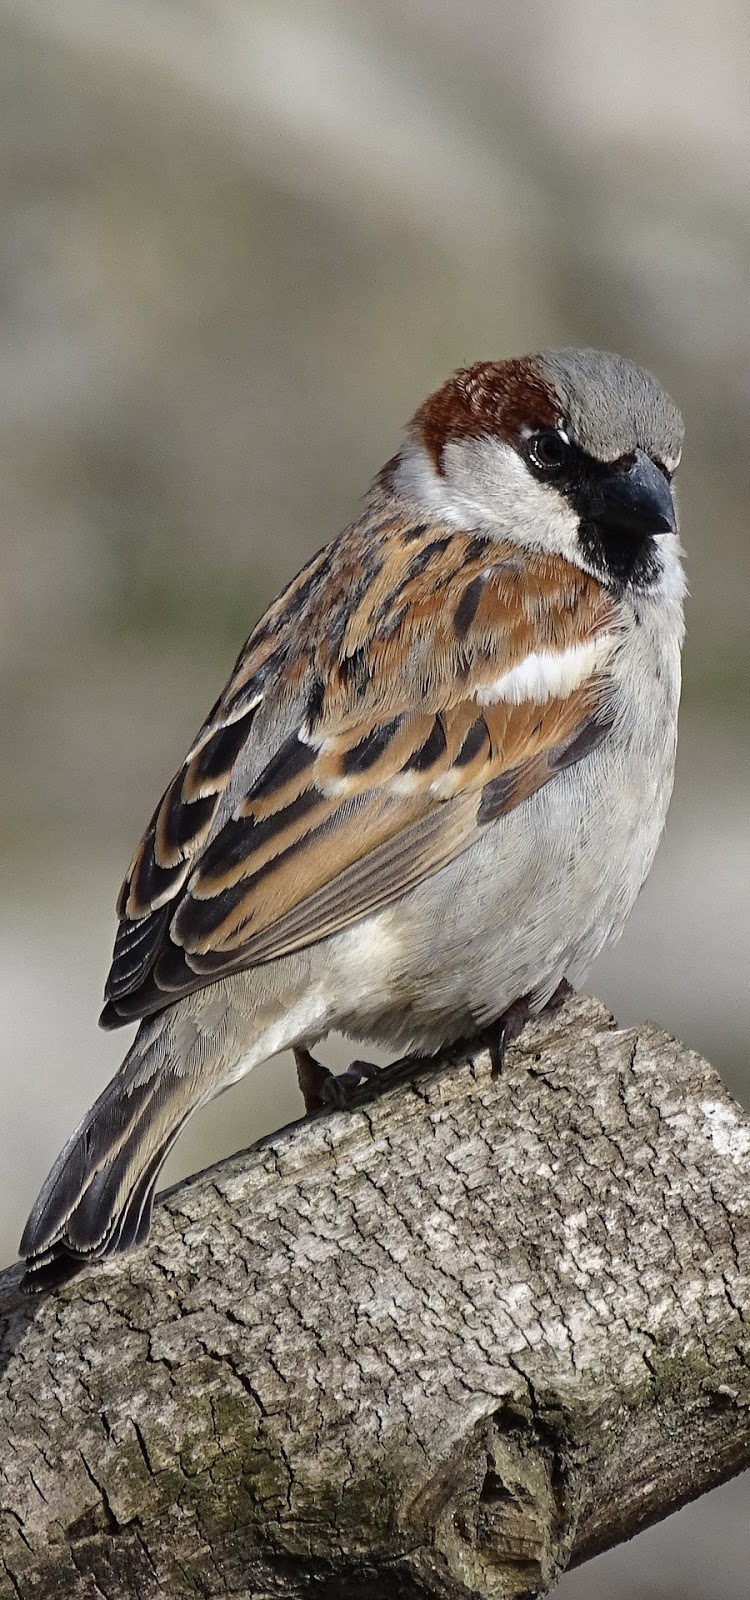 Picture of a brown sparrow.